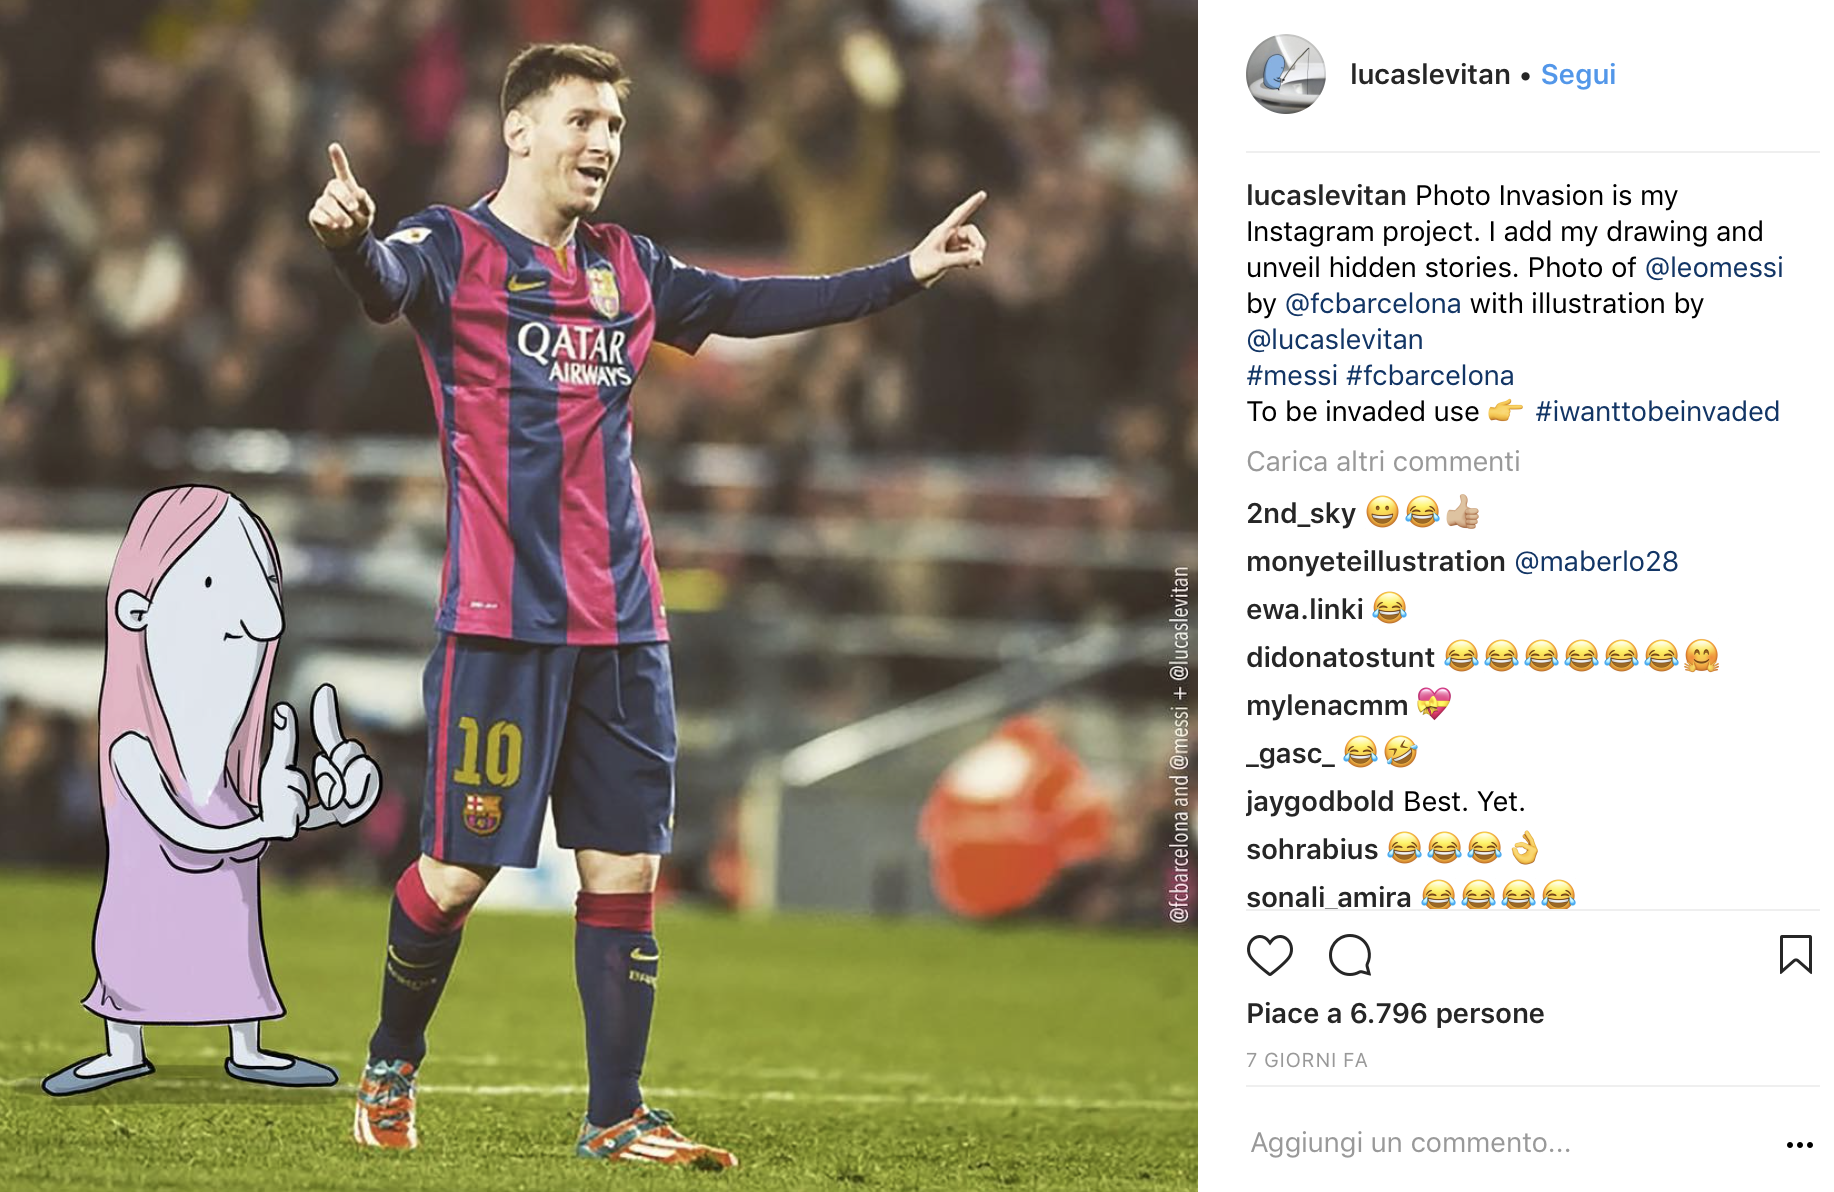 Lucas-Levitan-photo-invasion-messi